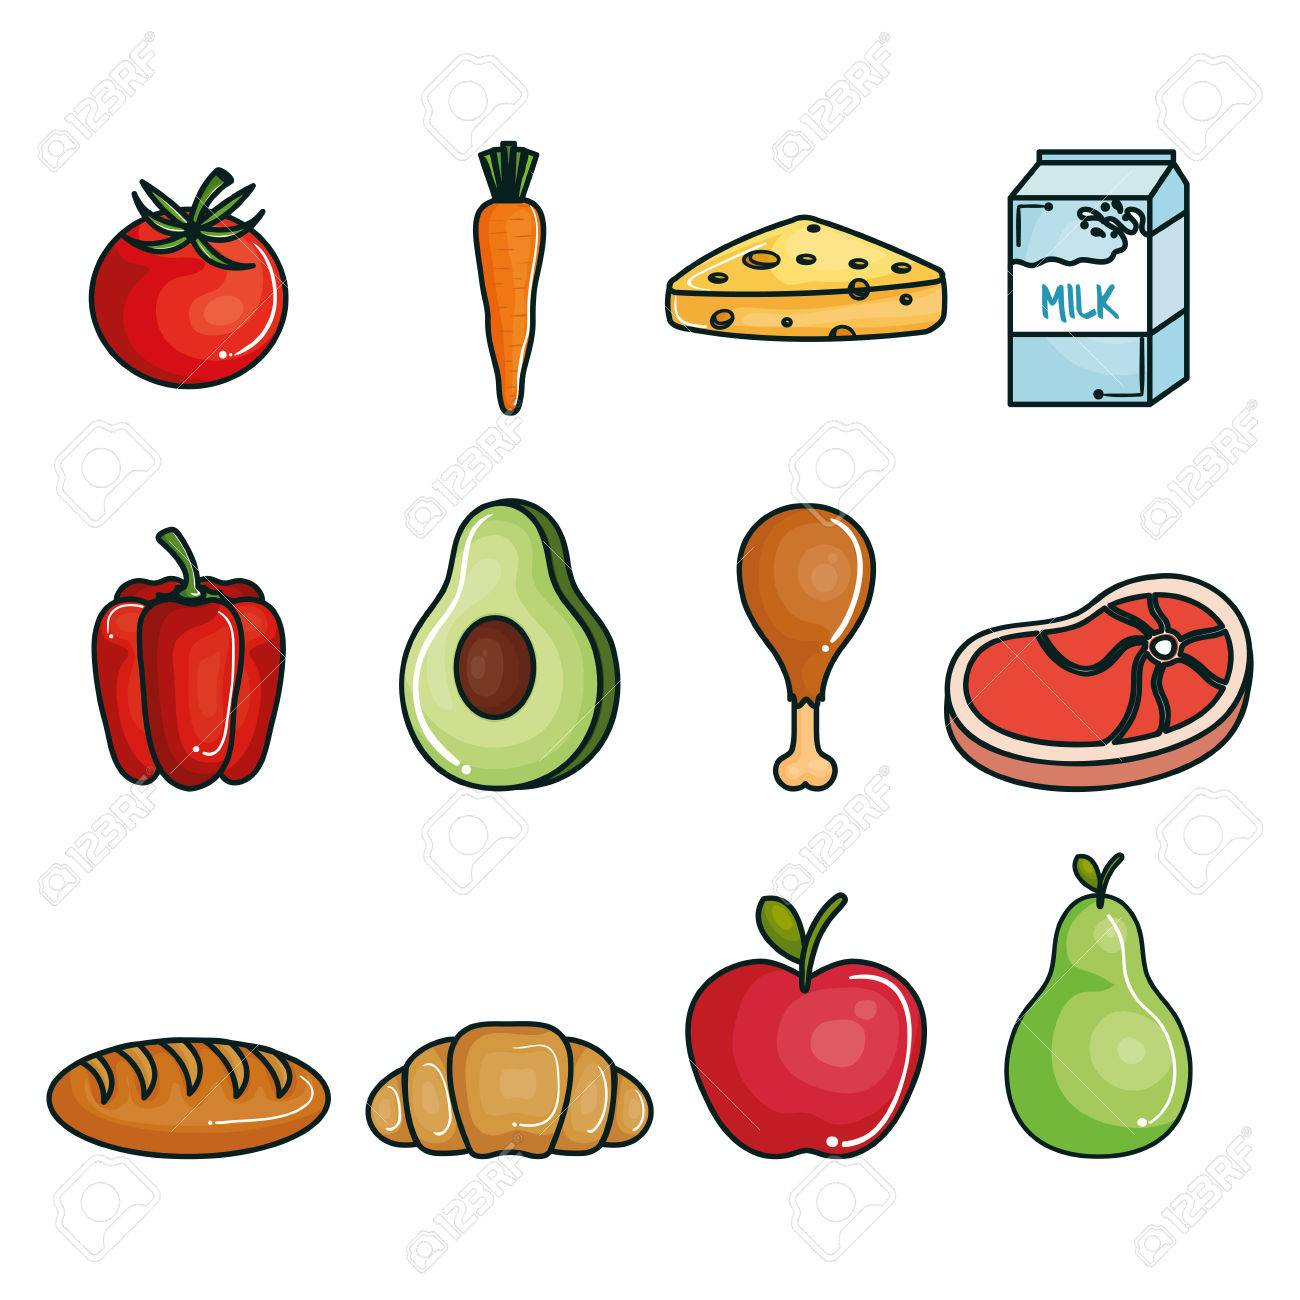 Healthy Food Set Over White Background Vector Illustration Royalty Free Cliparts Vectors And Stock Illustration Image 78269141